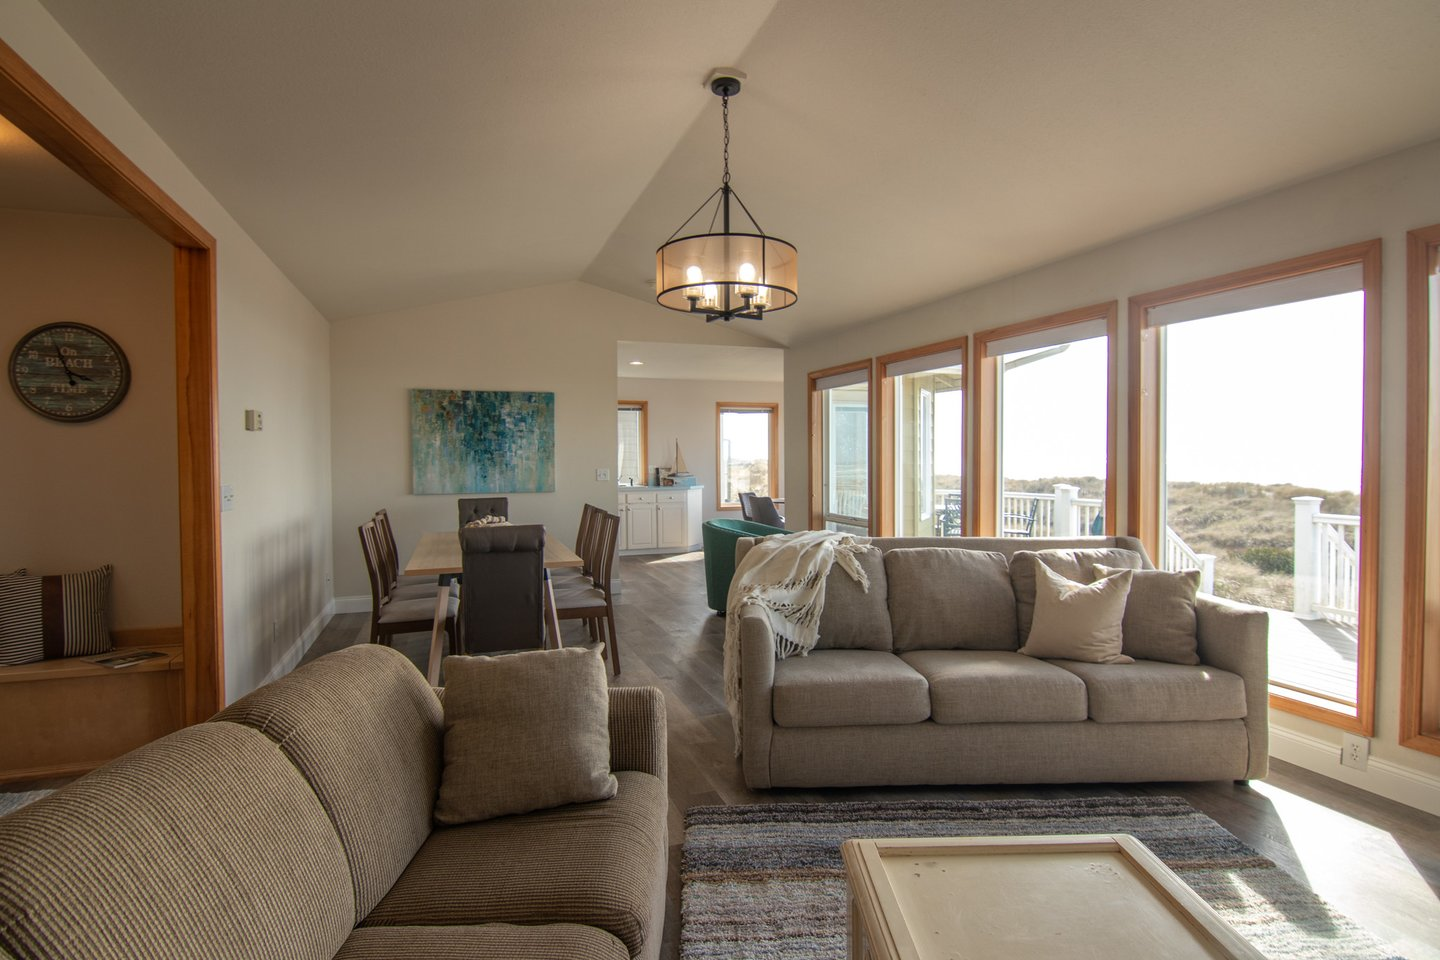 Relax in the living room after exploring miles of sandy beach right outside your door.